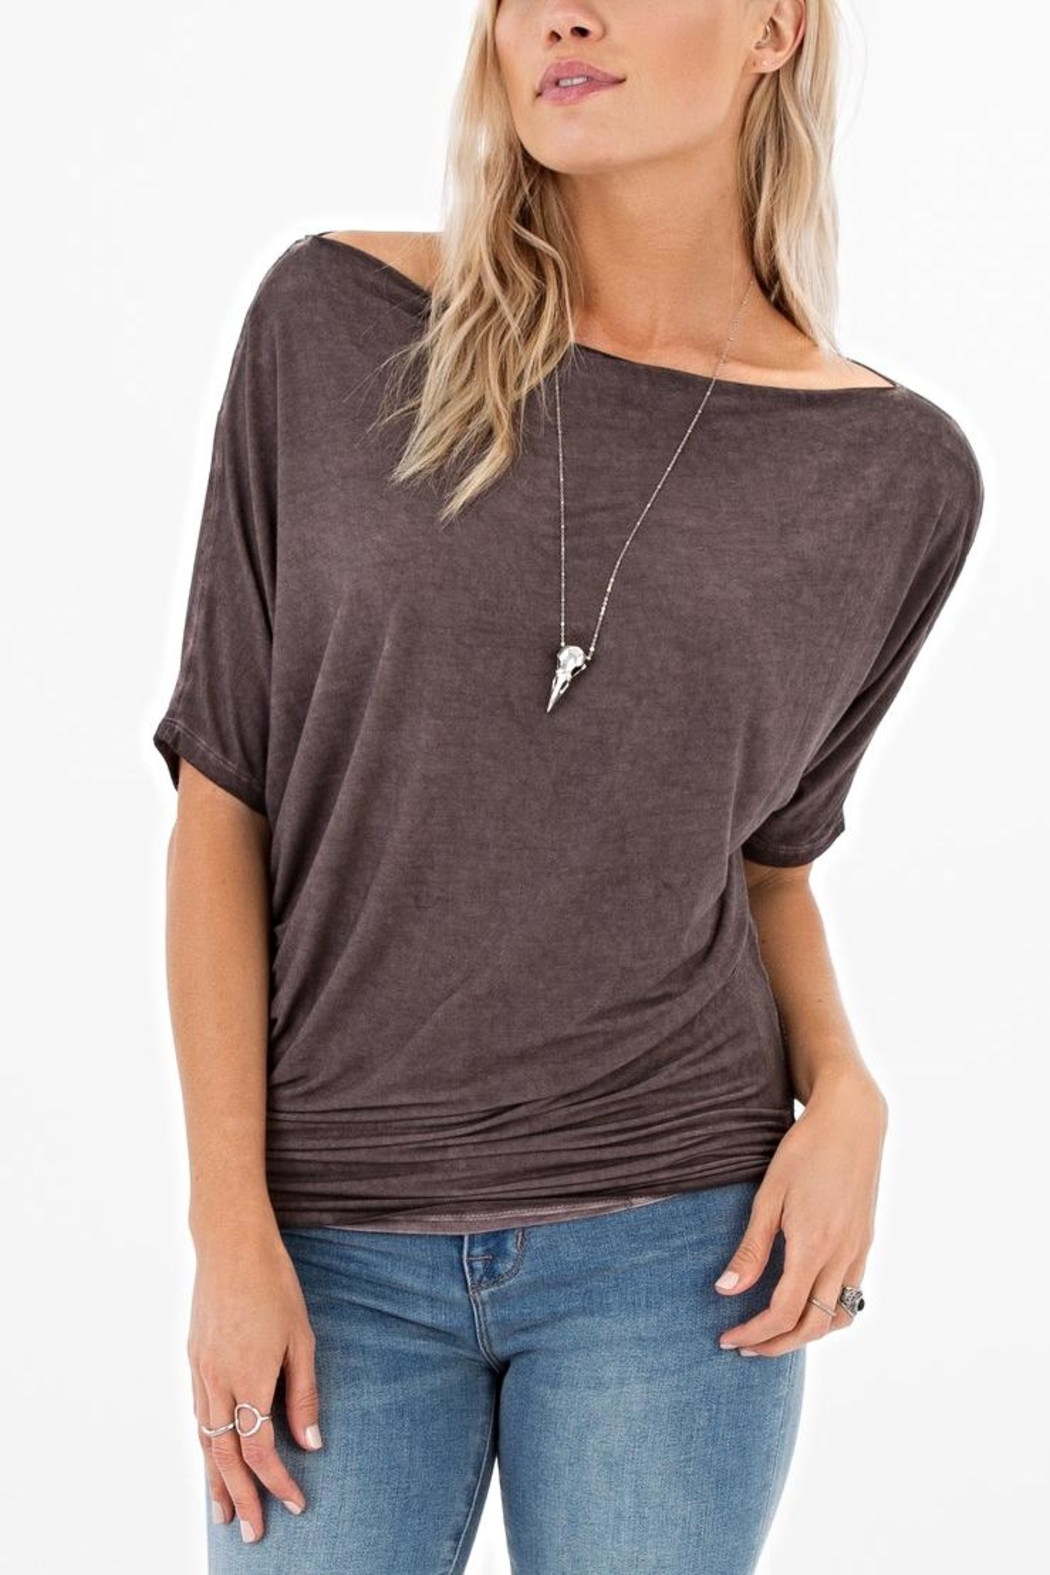 White Crow Boatneck Top - Main Image